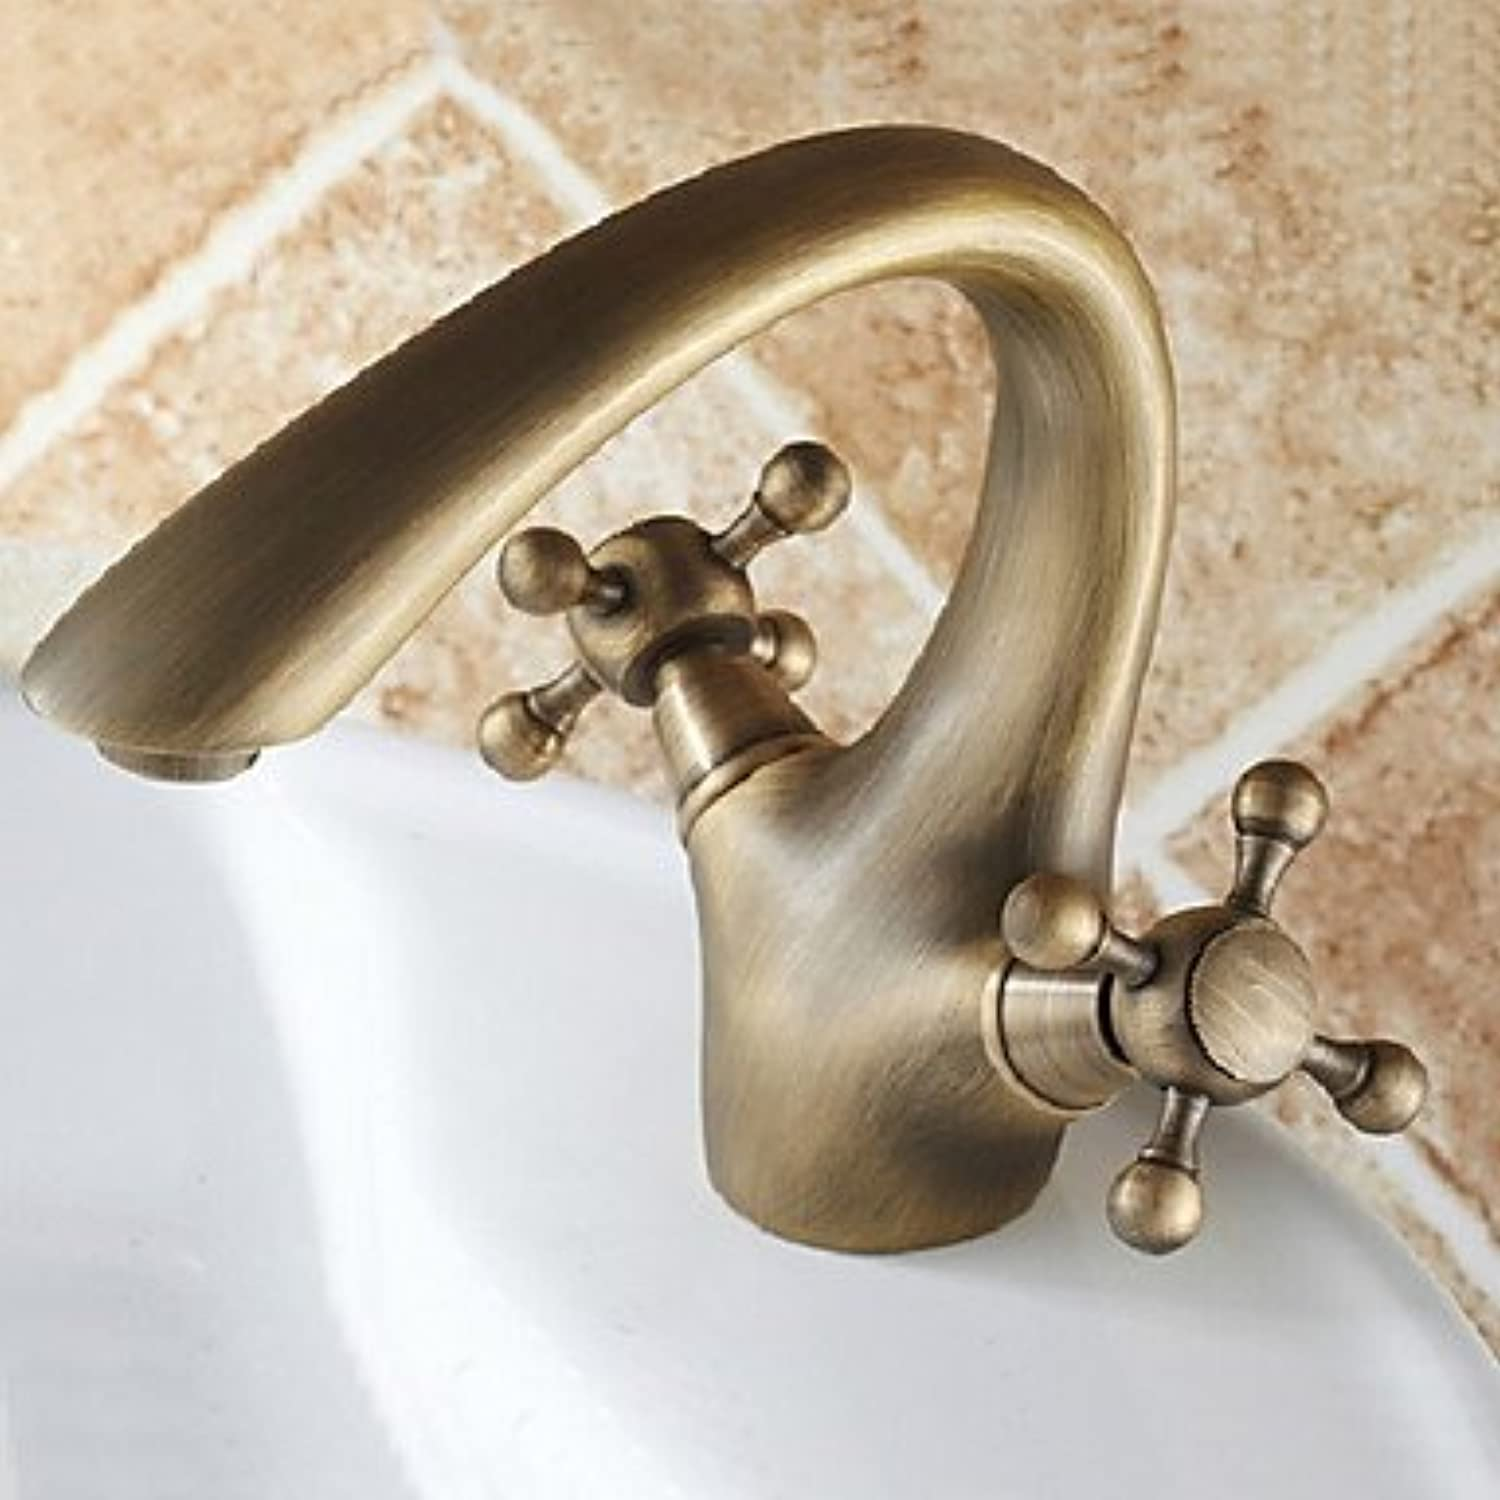 ZLL The antique bronze Centerset two handle bathroom sink faucets single hole